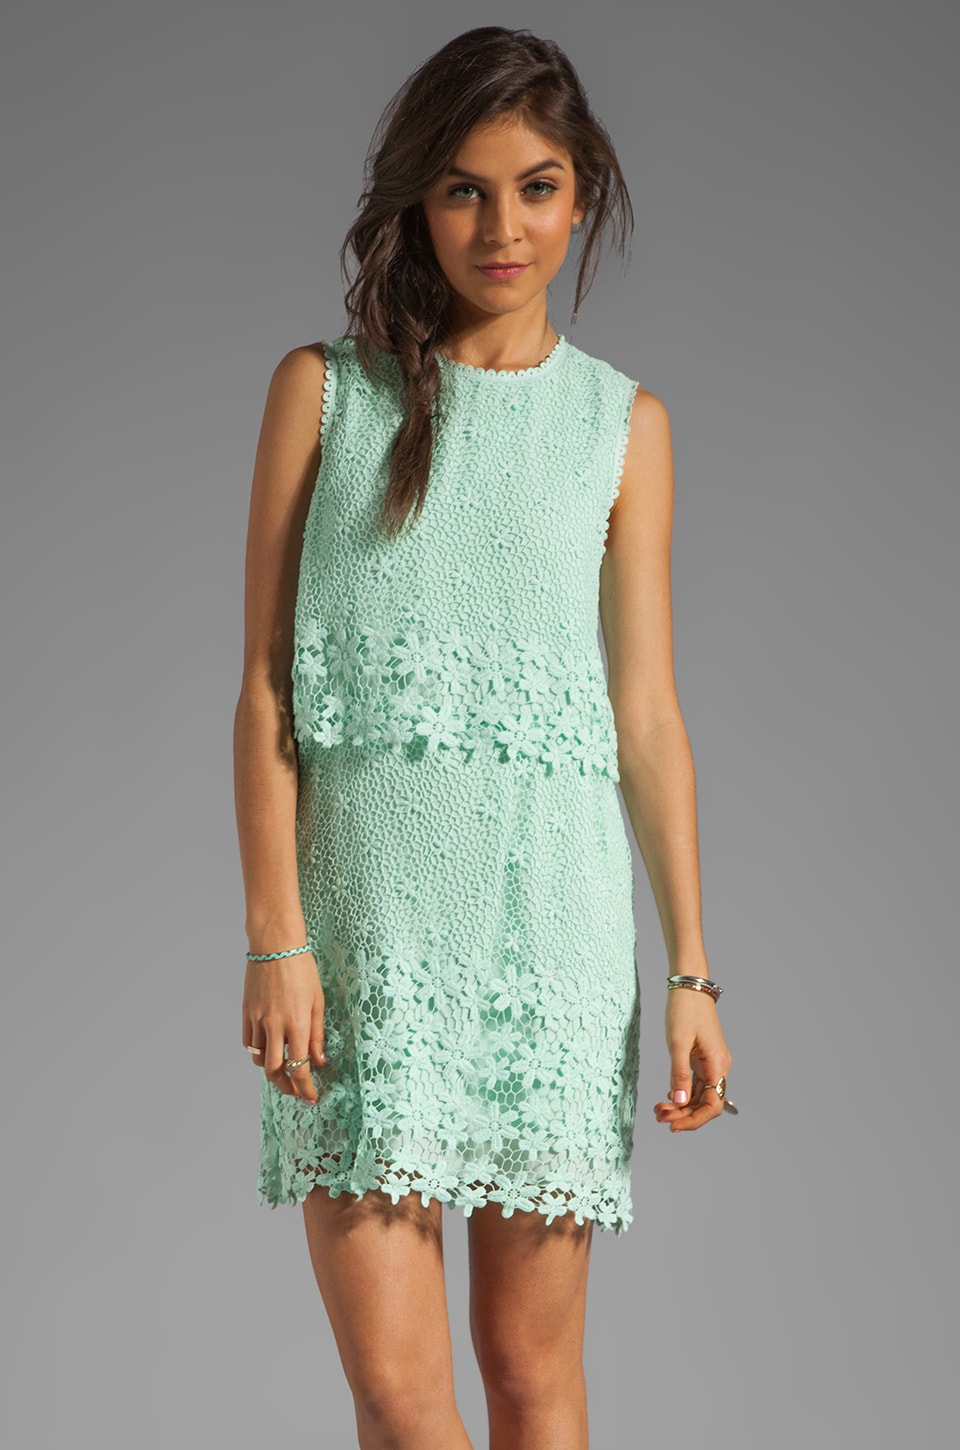 Dolce Vita Aceline Daisy Lace Dress in Mint